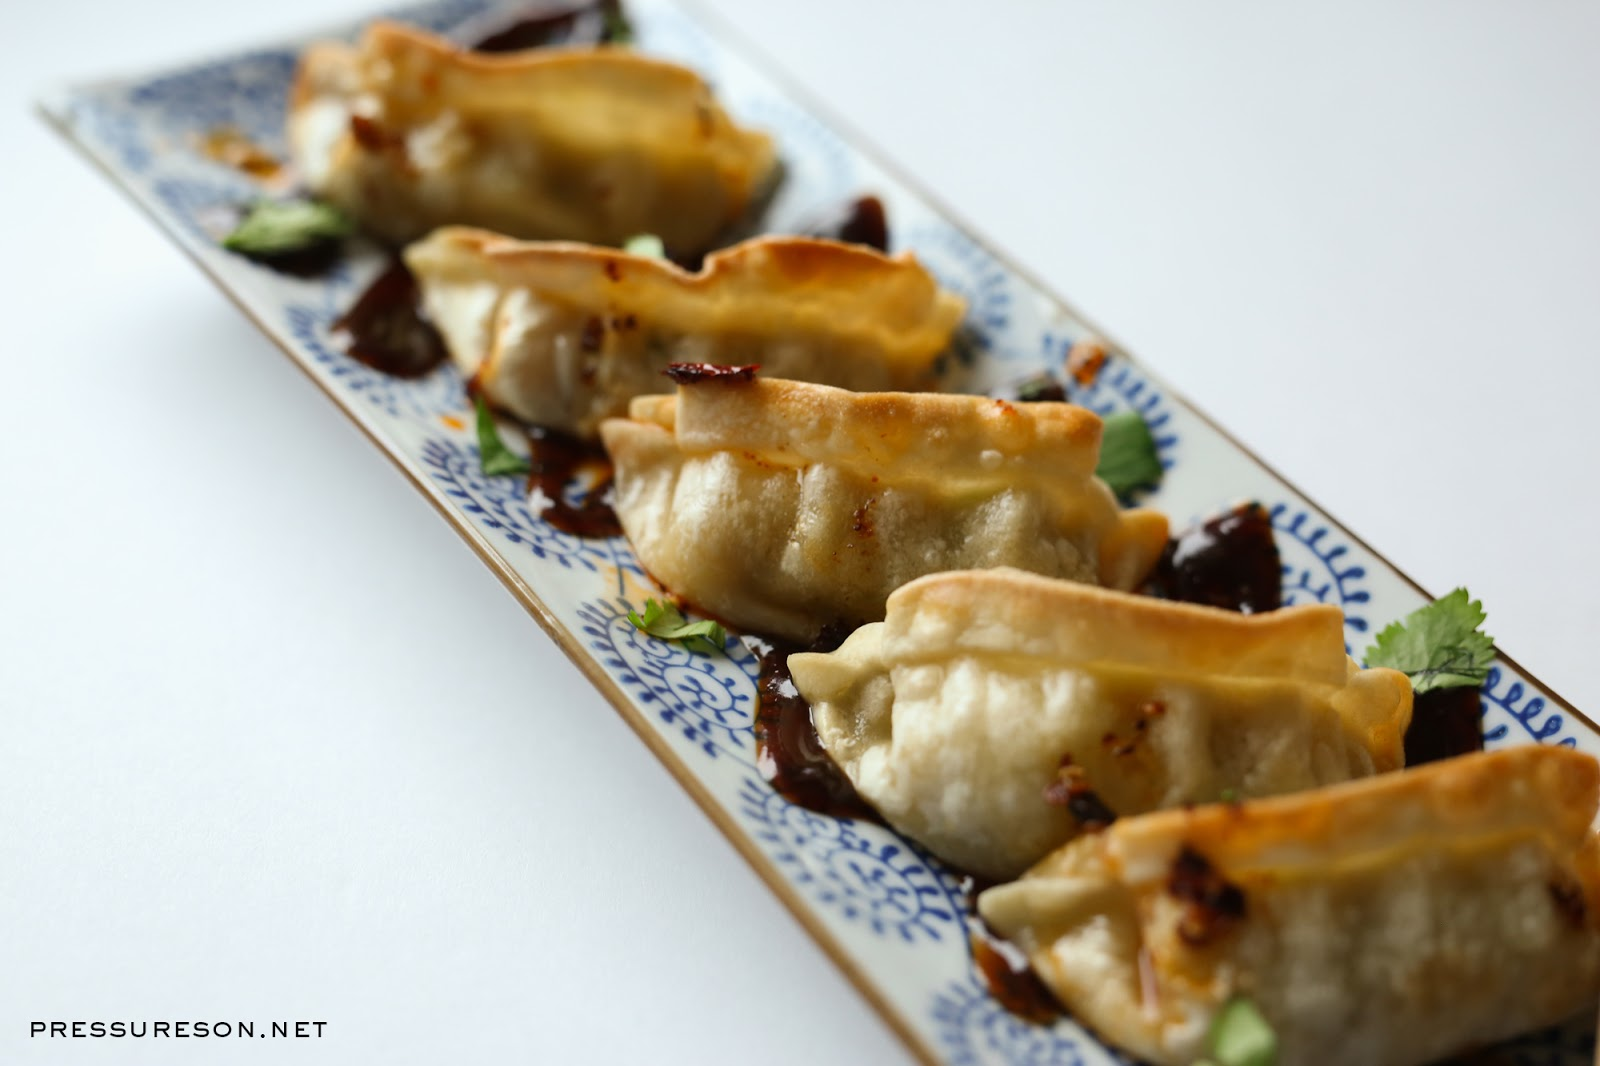 Discussion on this topic: How to Cook Frozen Dumplings, how-to-cook-frozen-dumplings/